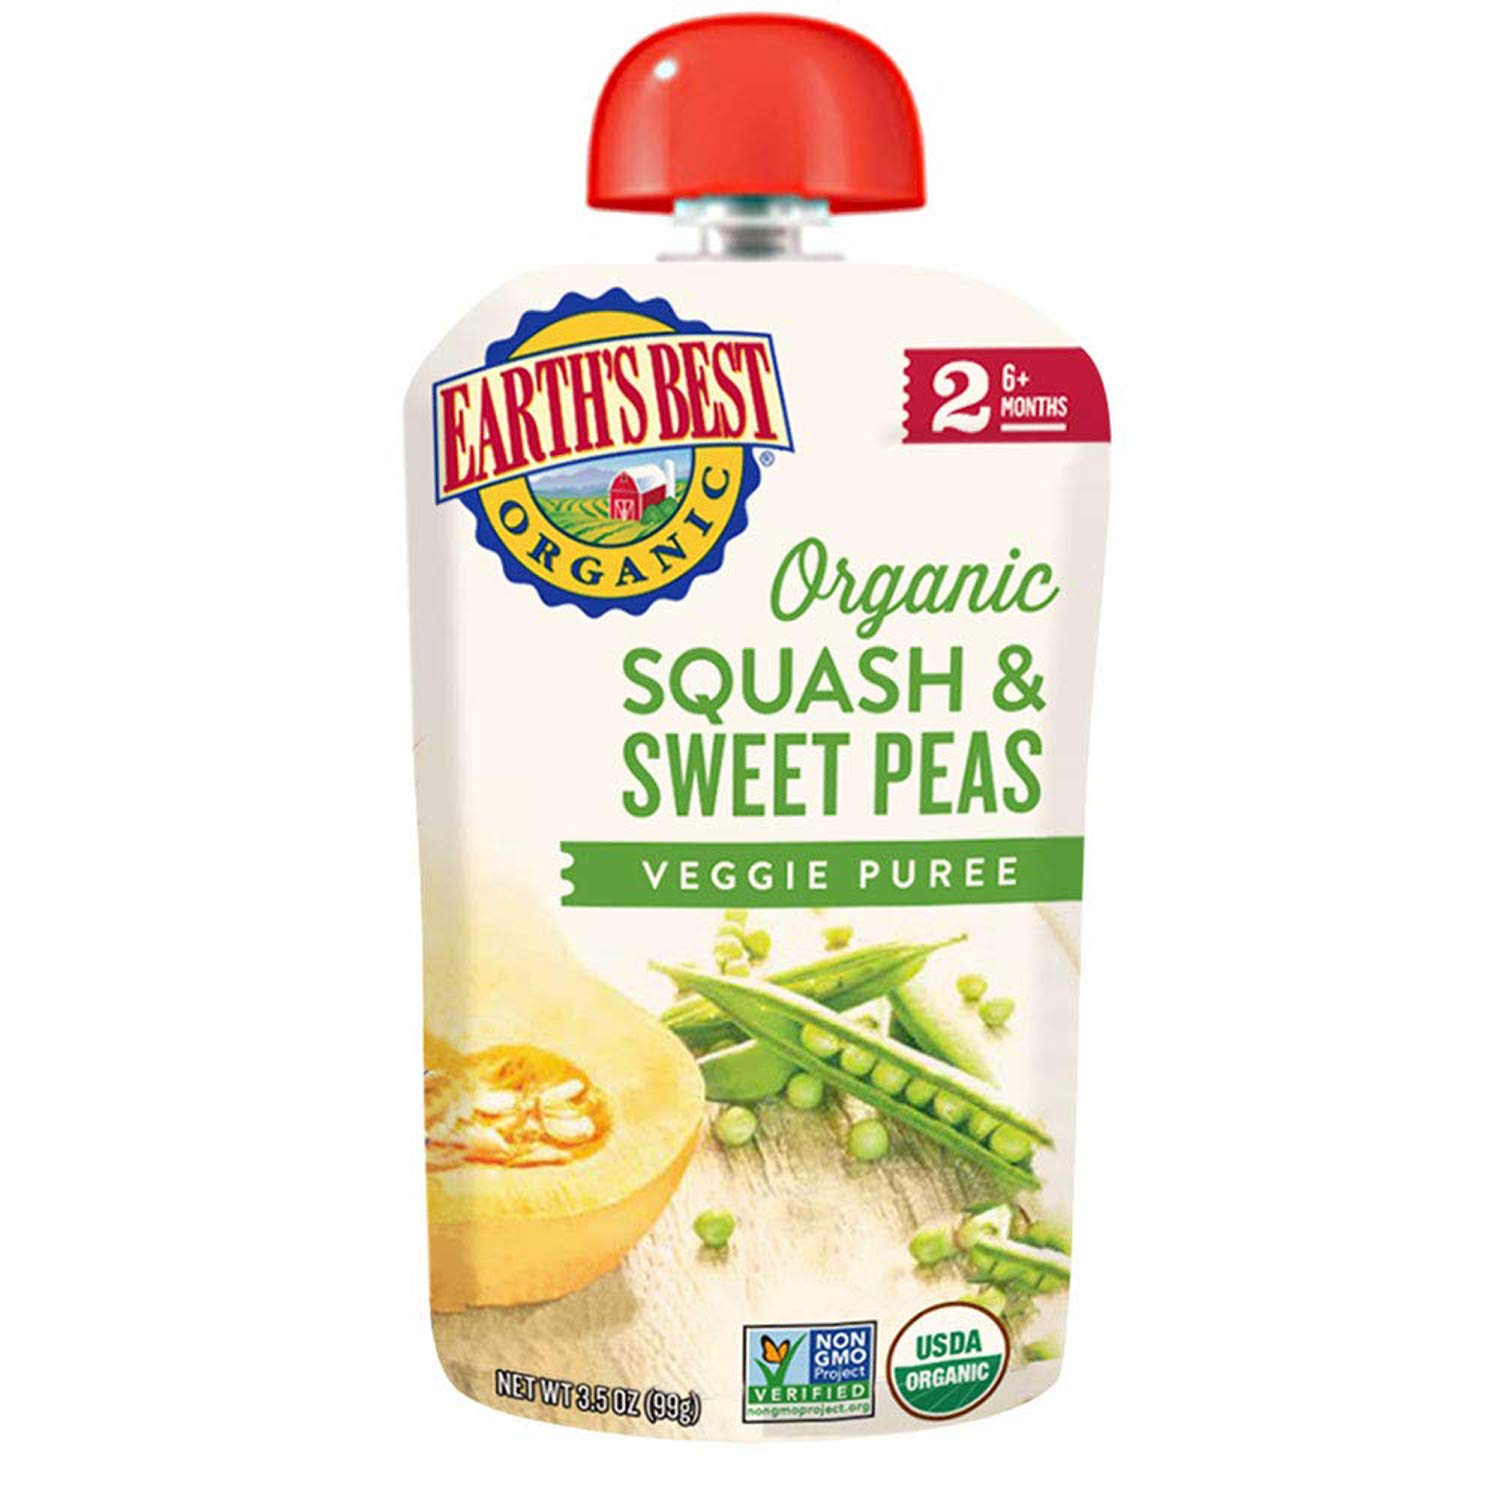 Earth's Best Organic Stage 2 Baby Food, Squash and Sweet Peas, 3.5 oz. Pouch